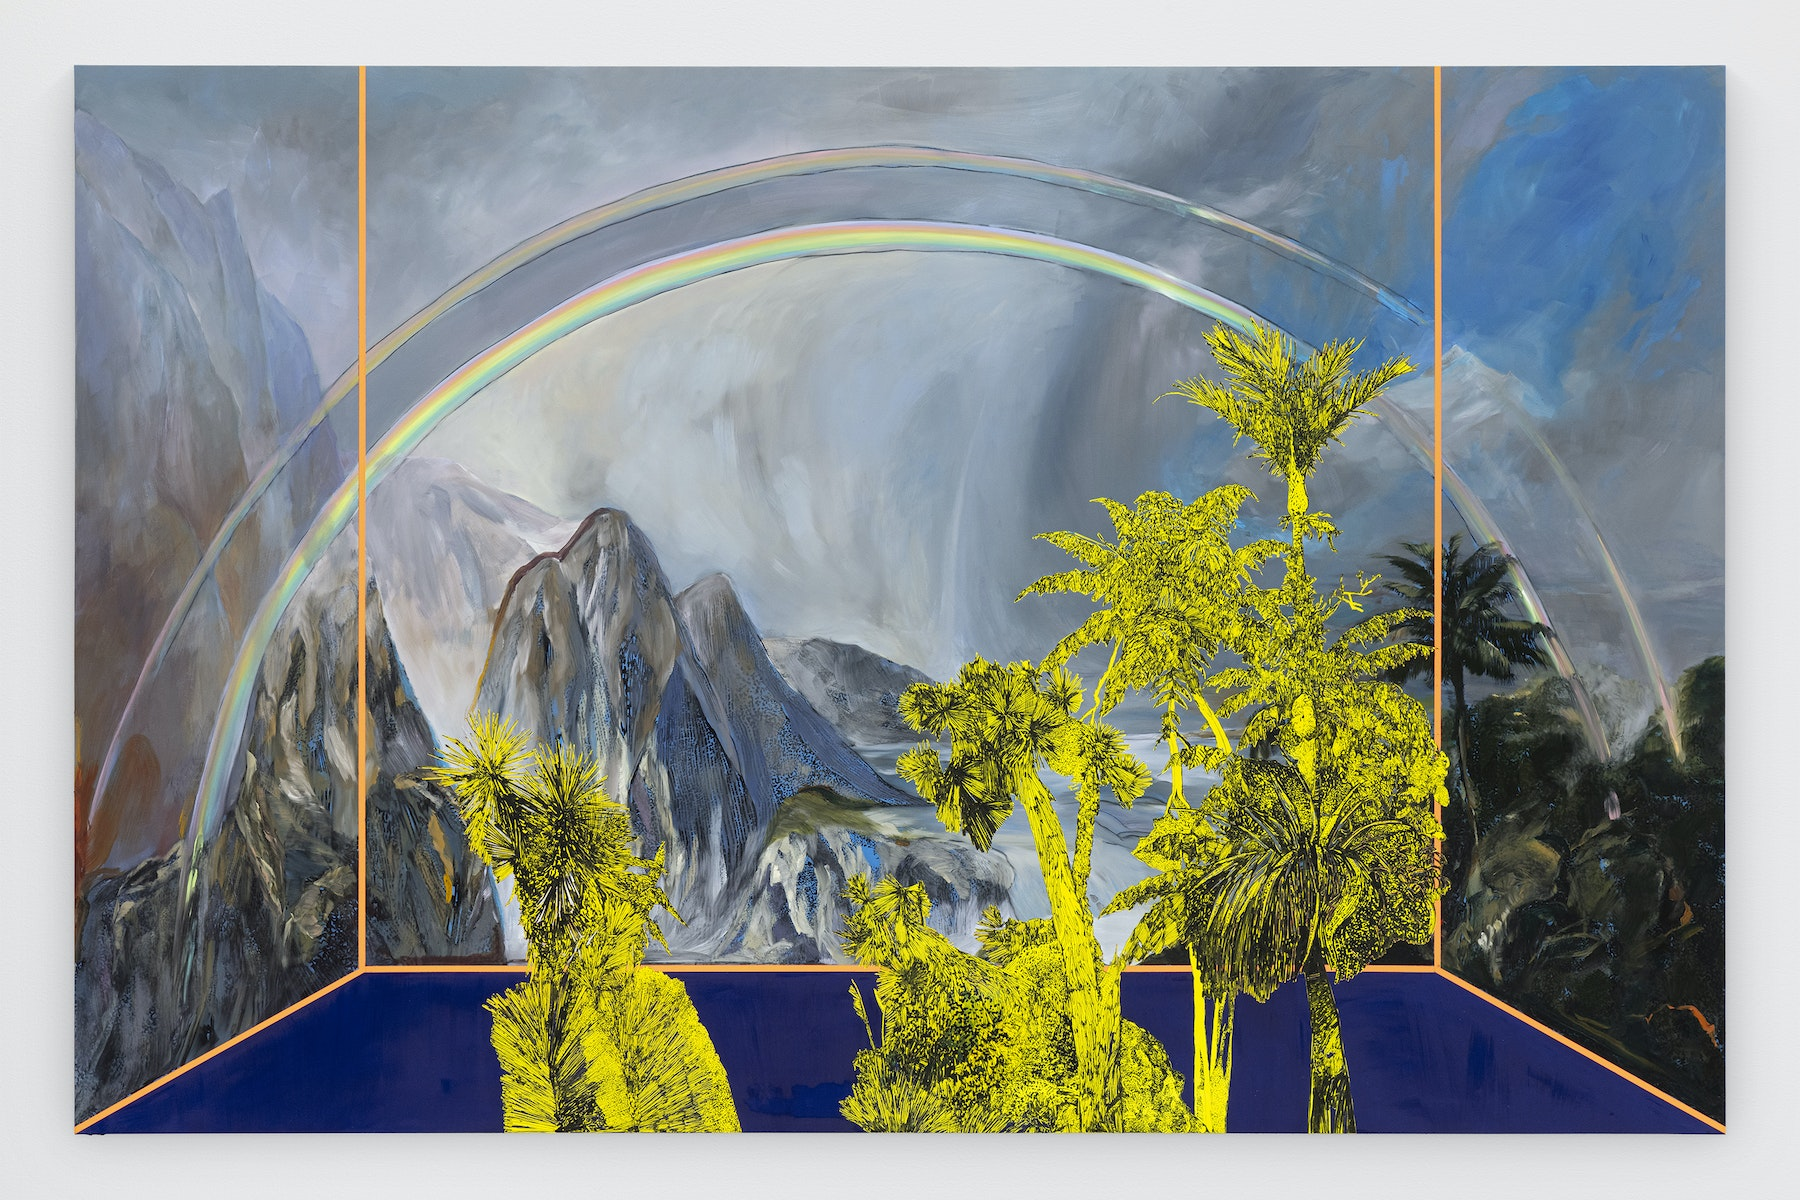 "Whitney Bedford ""Veduta (Church/ Rainbow),"" 2020 Ink and oil on linen on hybrid panel 66 x 102 x 2"" [HxWxD] (167.64 x 259.08 x 5.08 cm) Inventory #BED369 Courtesy of the artist and Vielmetter Los Angeles Photo credit: Evan Bedford"